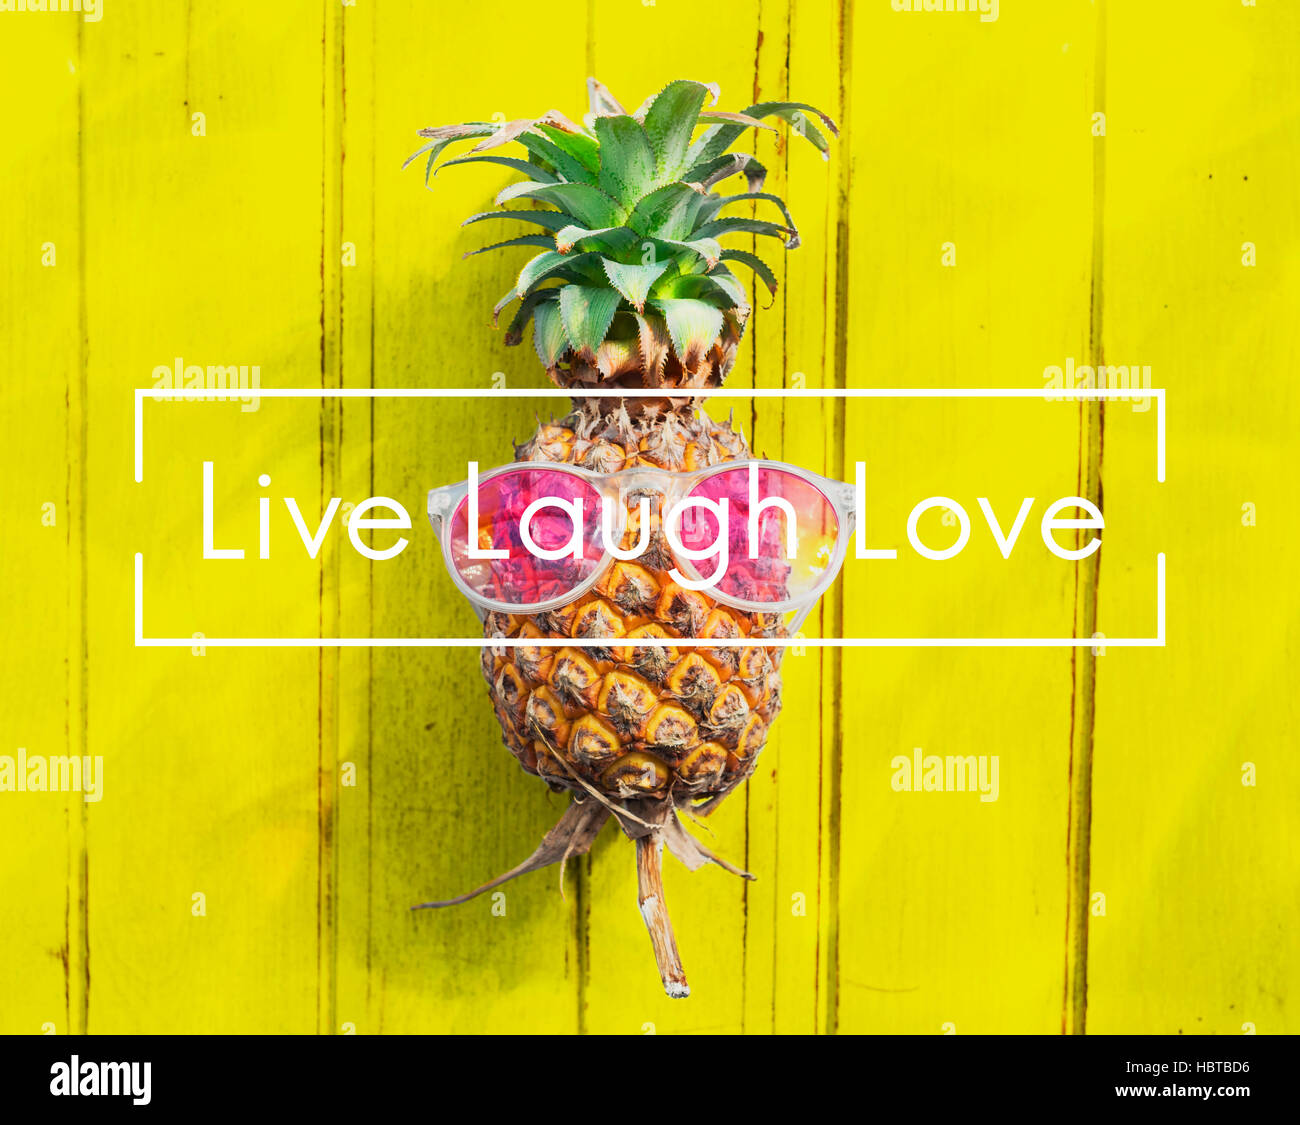 Live Laugh Love Alive Balance Vital Being Concept - Stock Image